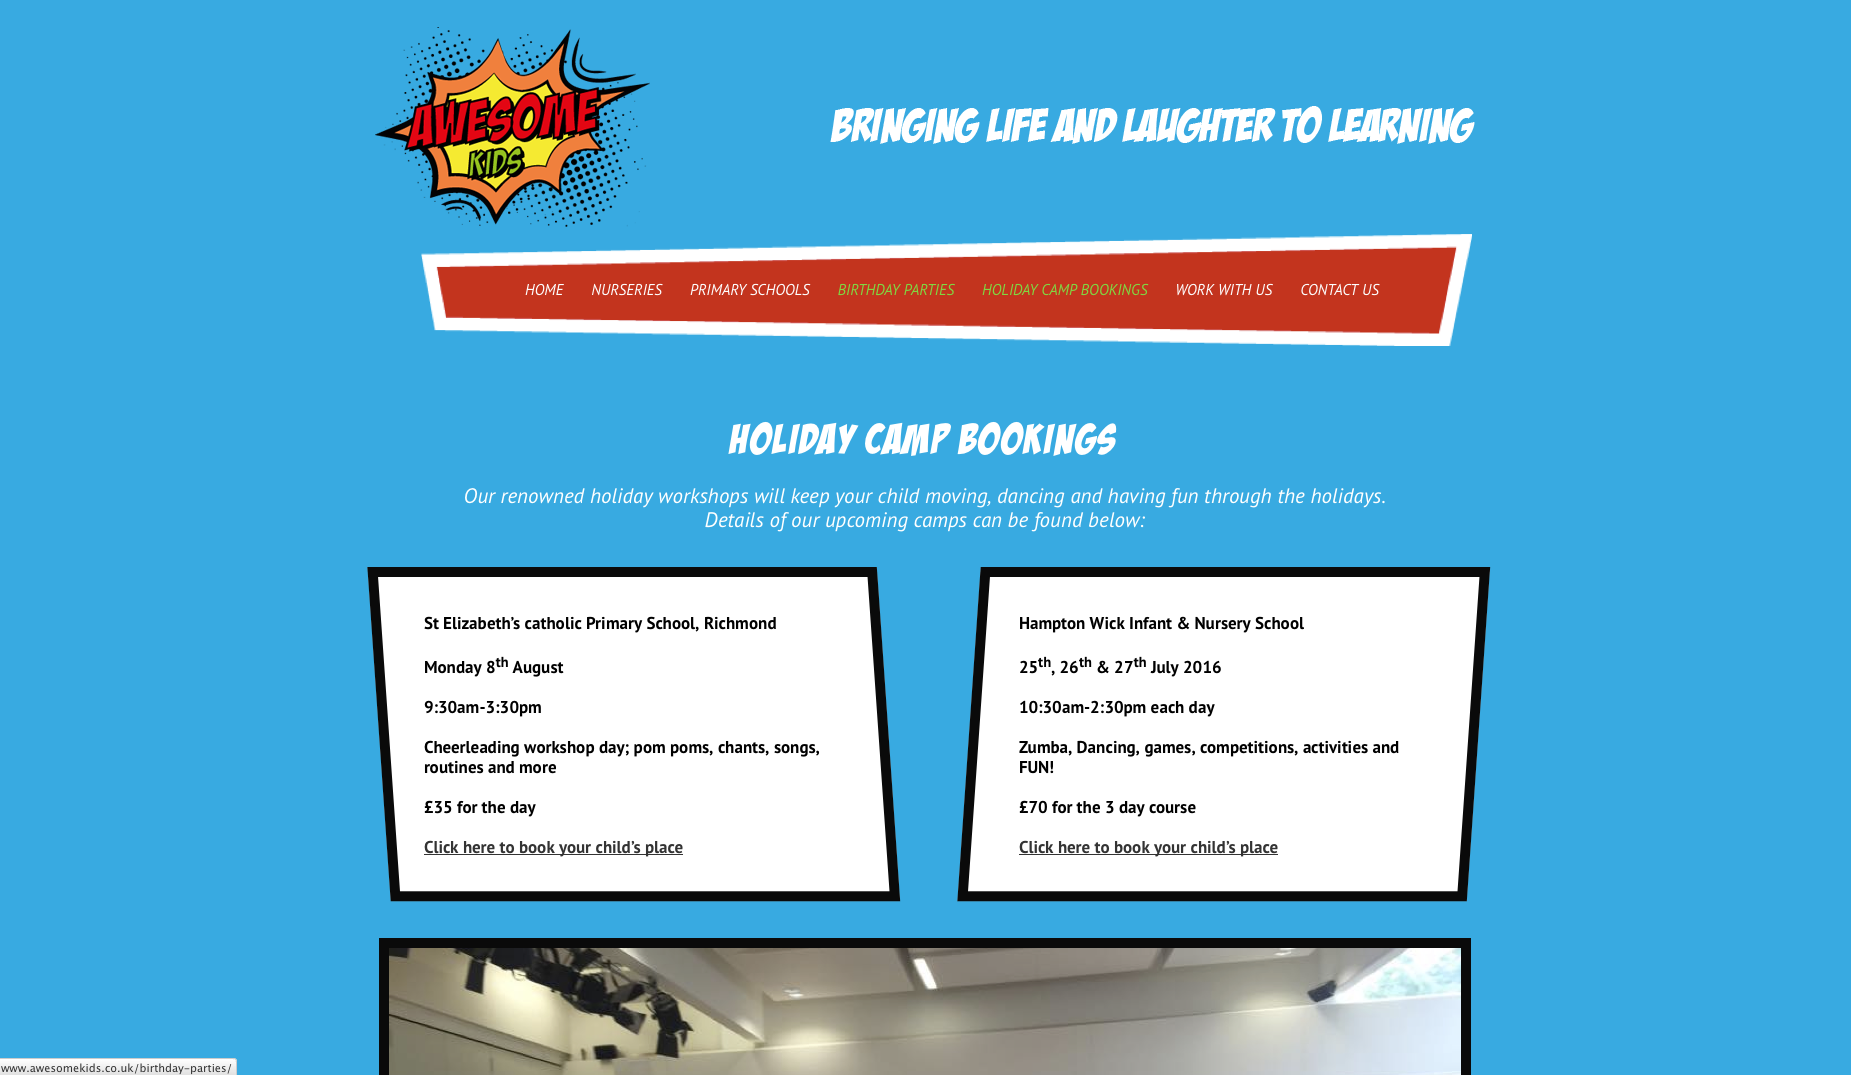 Awesome Kids Holiday Camp webpage screenshot